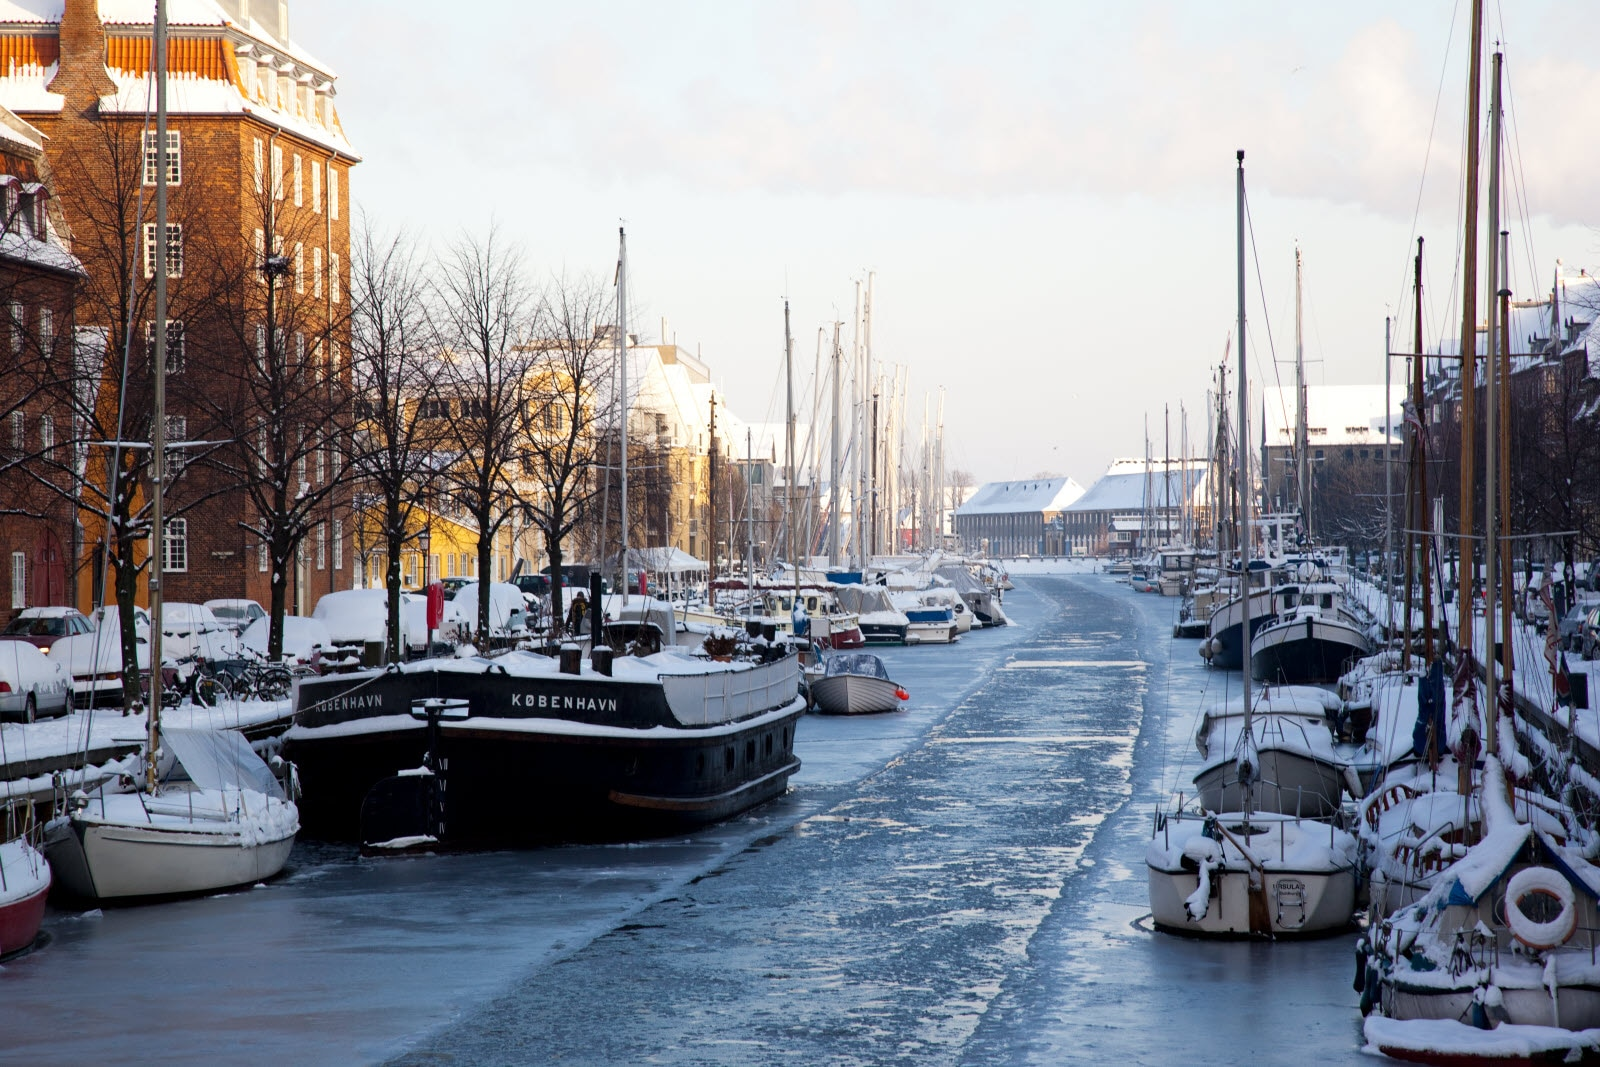 Winter at Christian's Habour